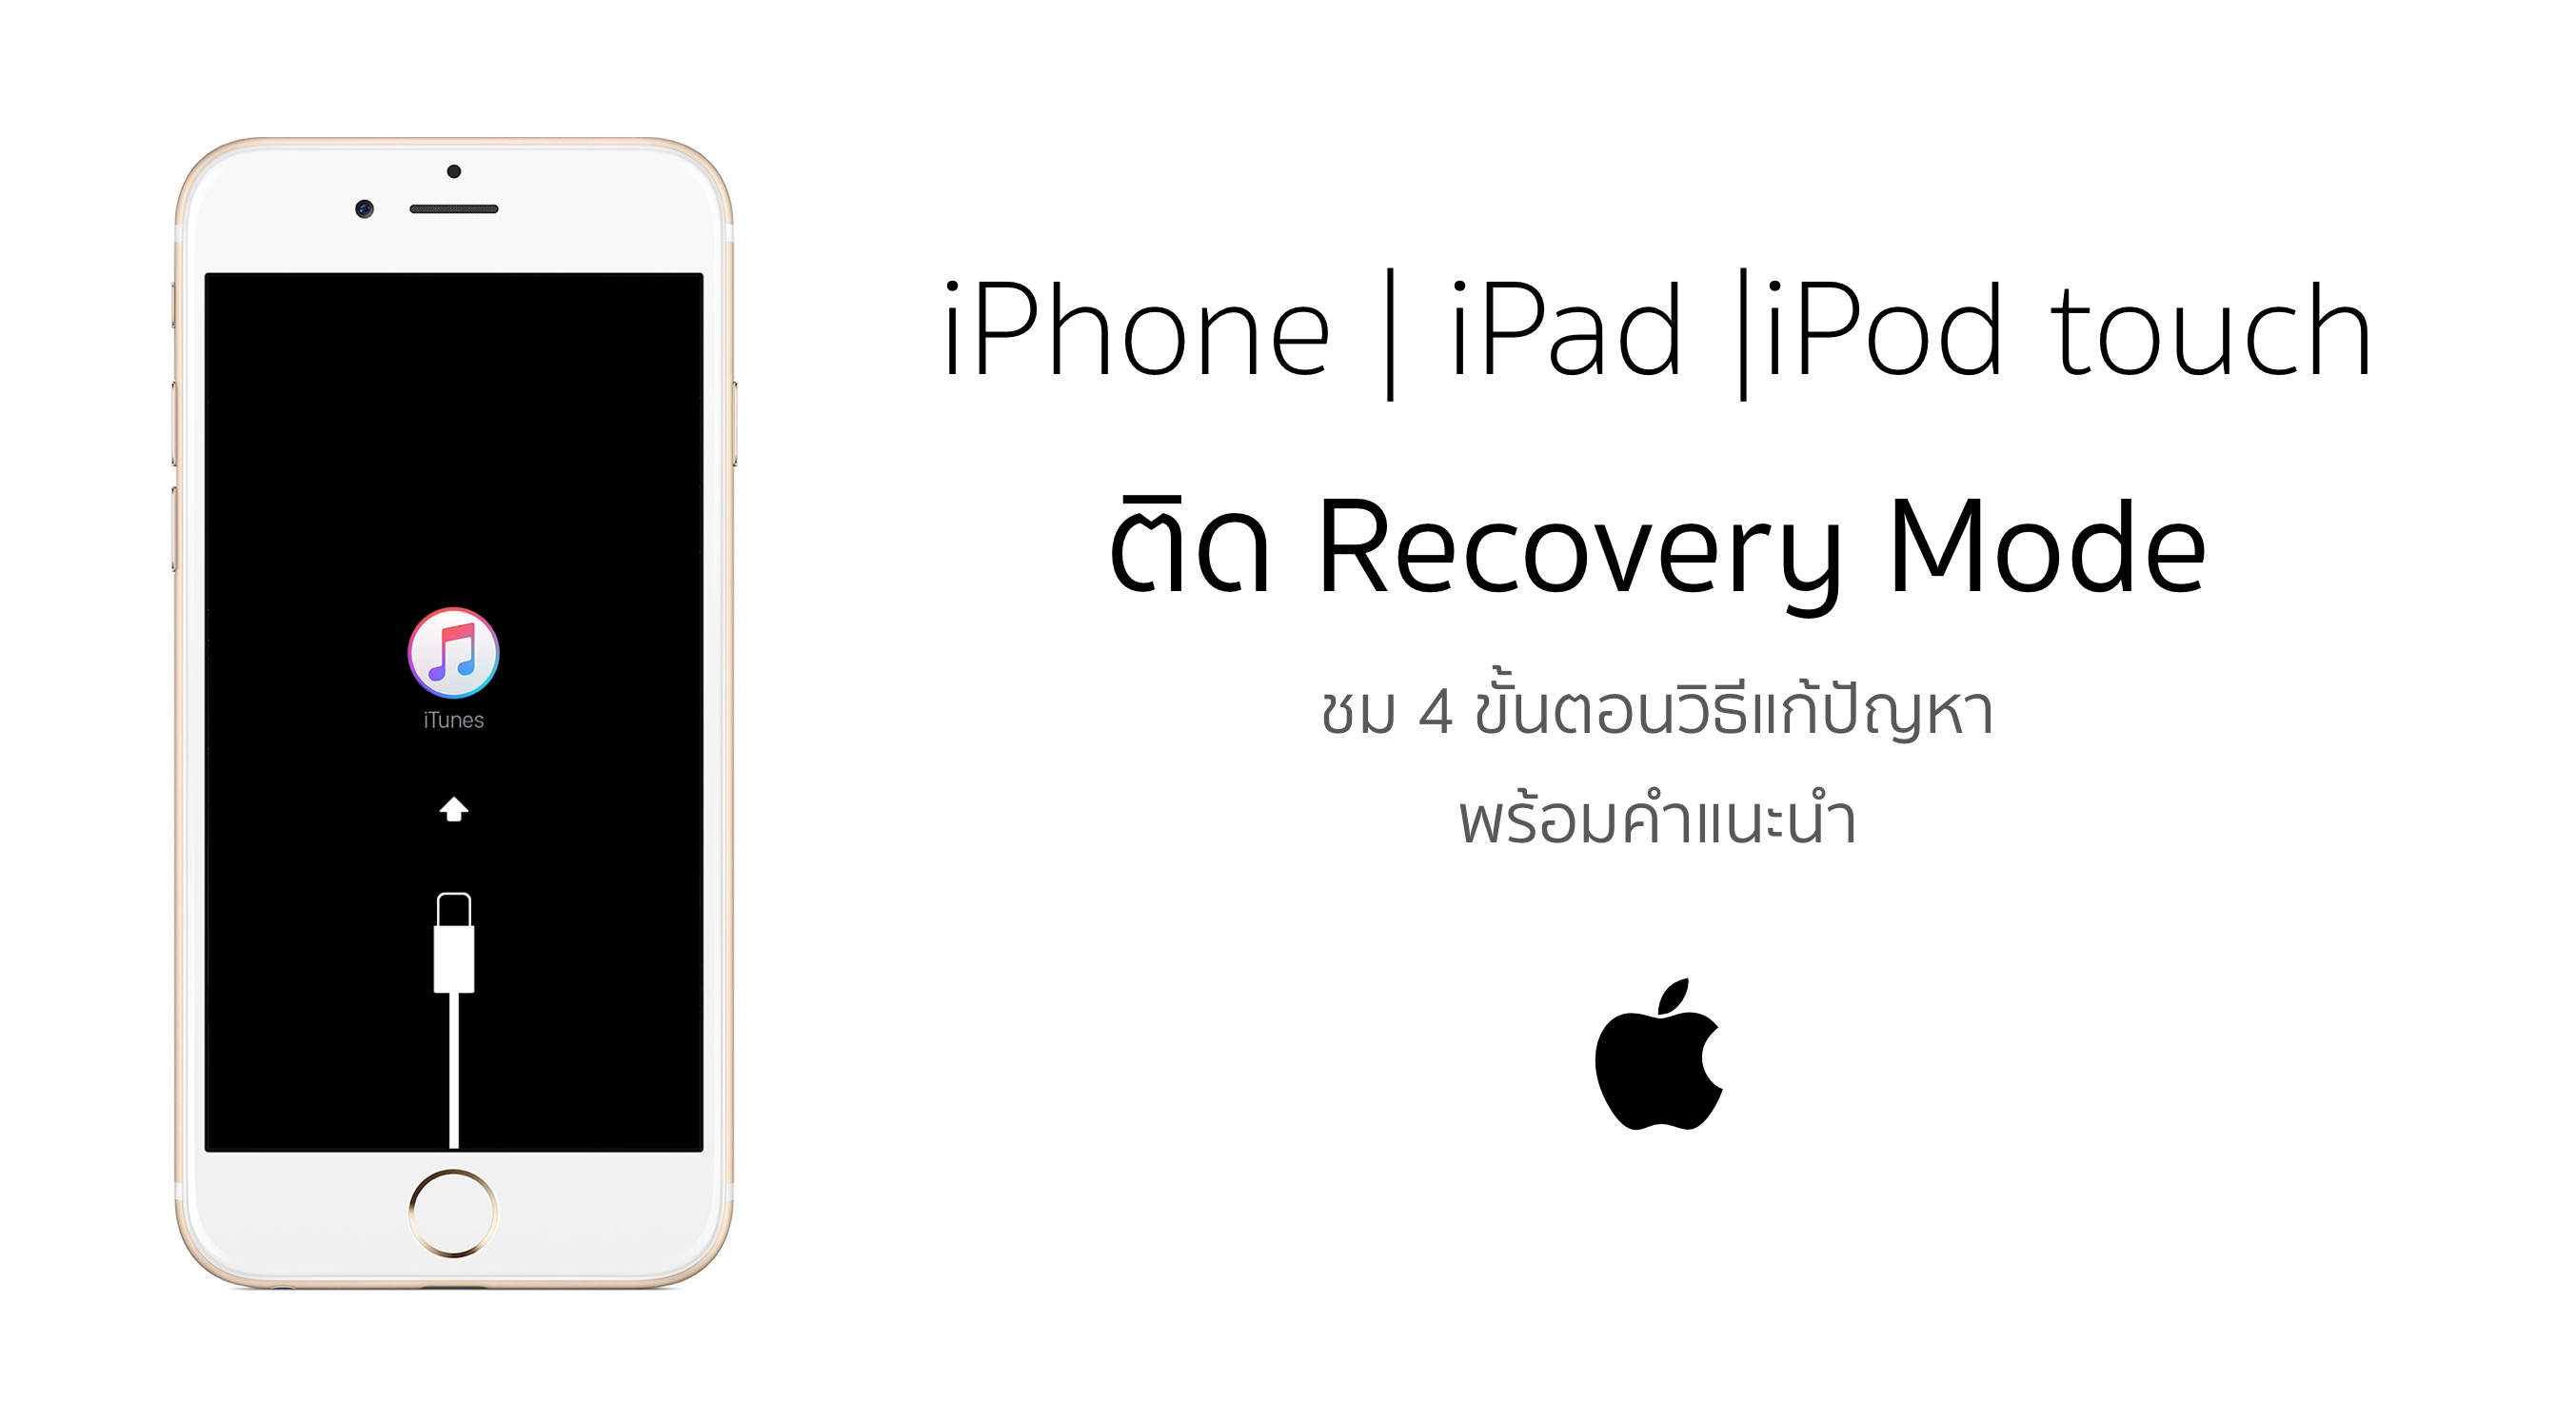 how to put iphone ios 7 in recovery mode